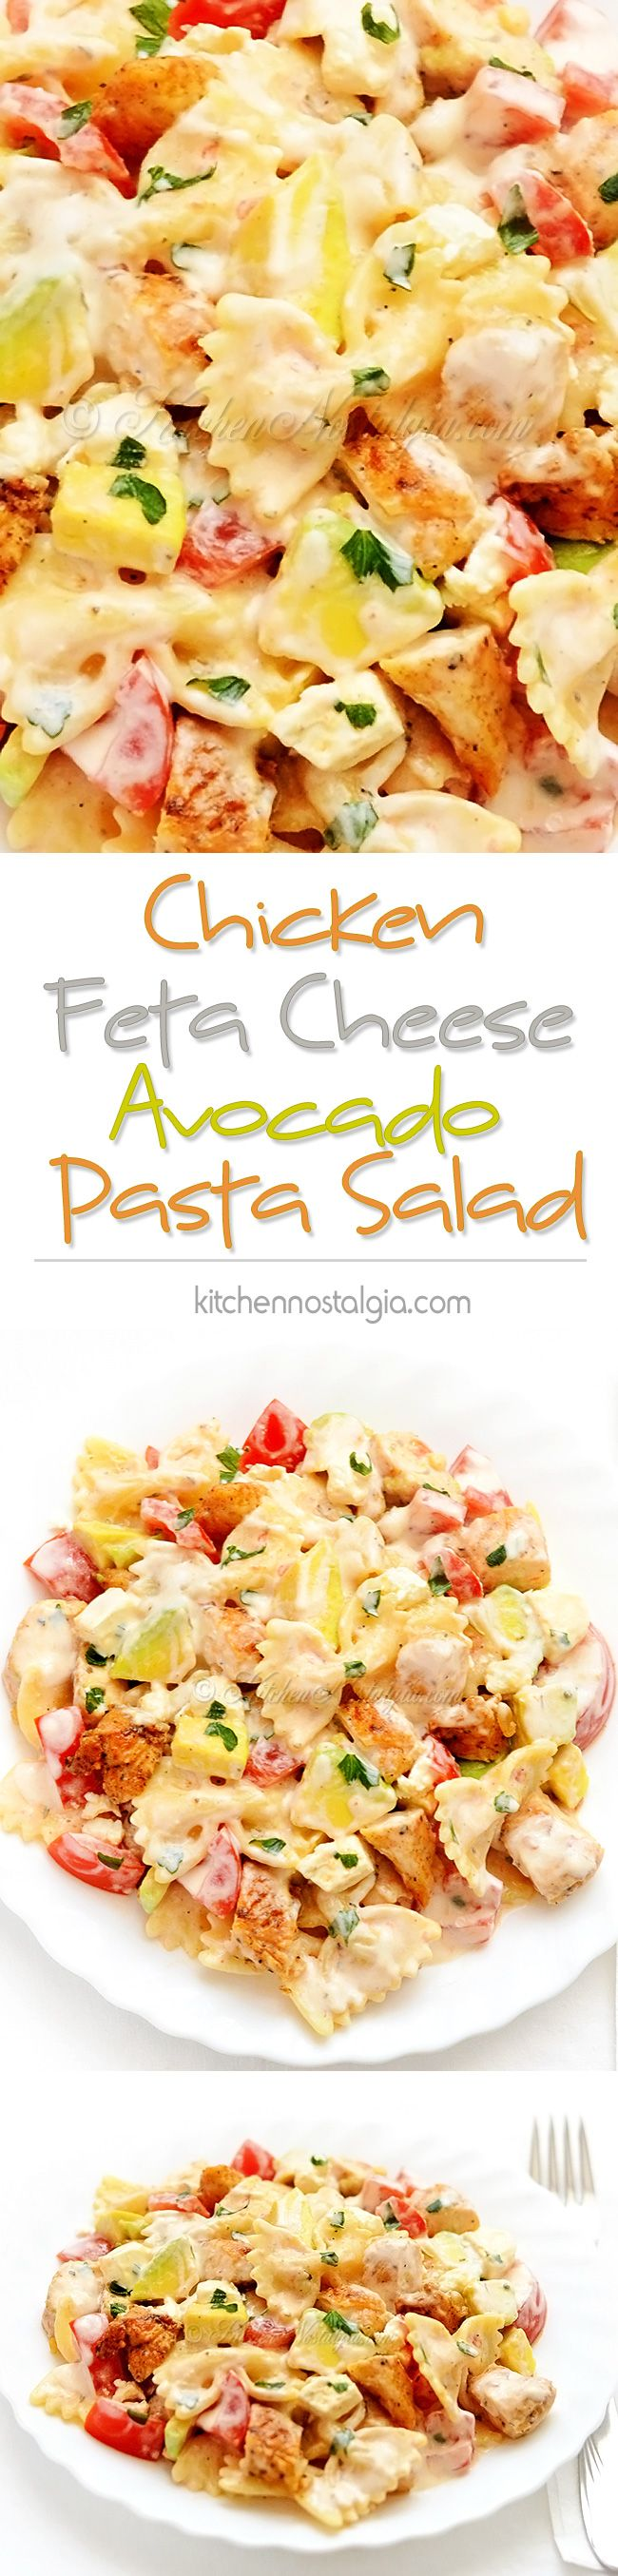 Chicken Feta Cheese Pasta Salad with avocados, tomatoes and creamy dressing; incredibly good for lunch or your picnic table; better than deli salad!